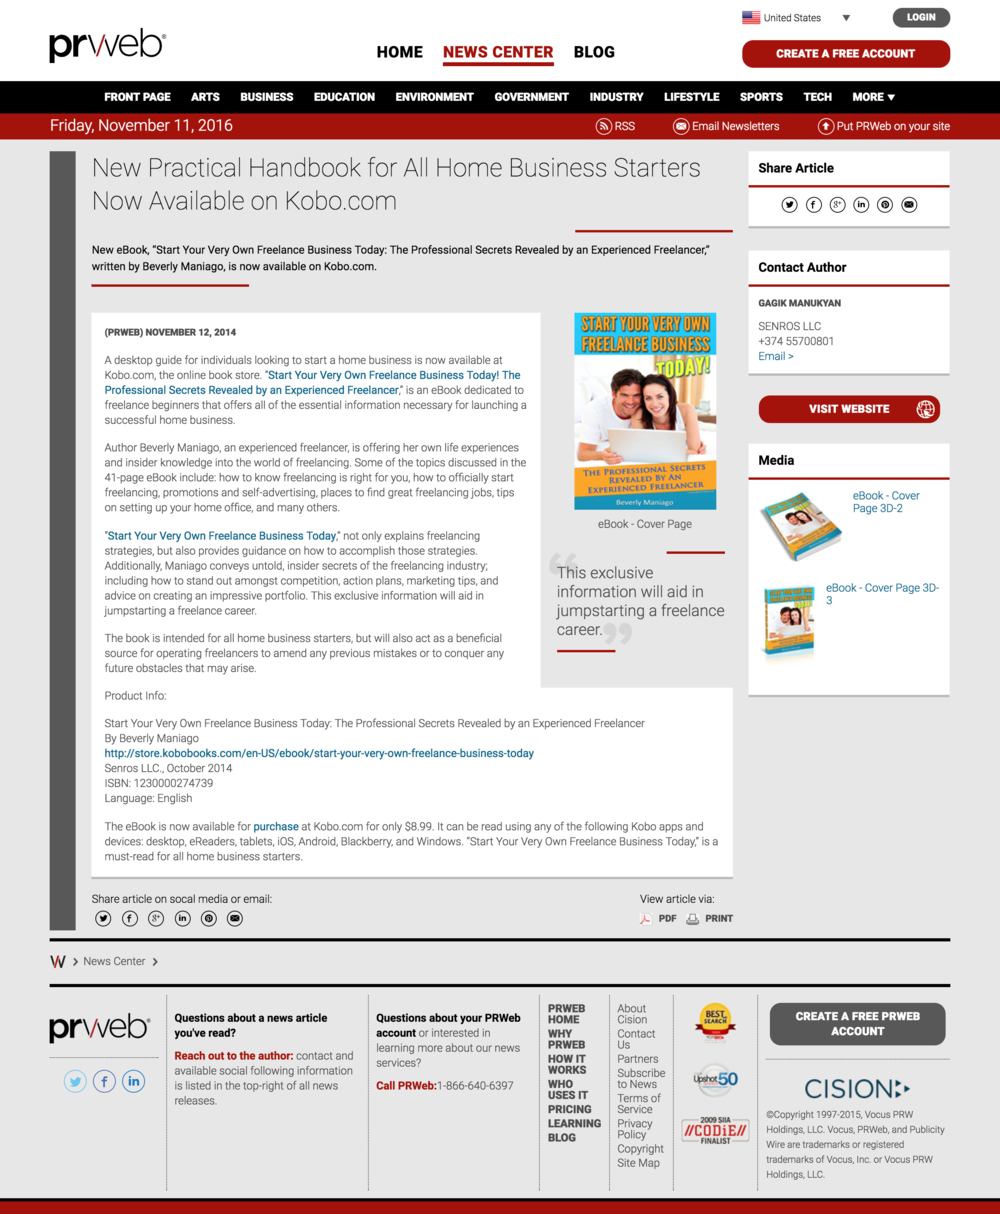 screencapture-prweb-releases-2014-11-prweb12310965-htm-1478889542376.png